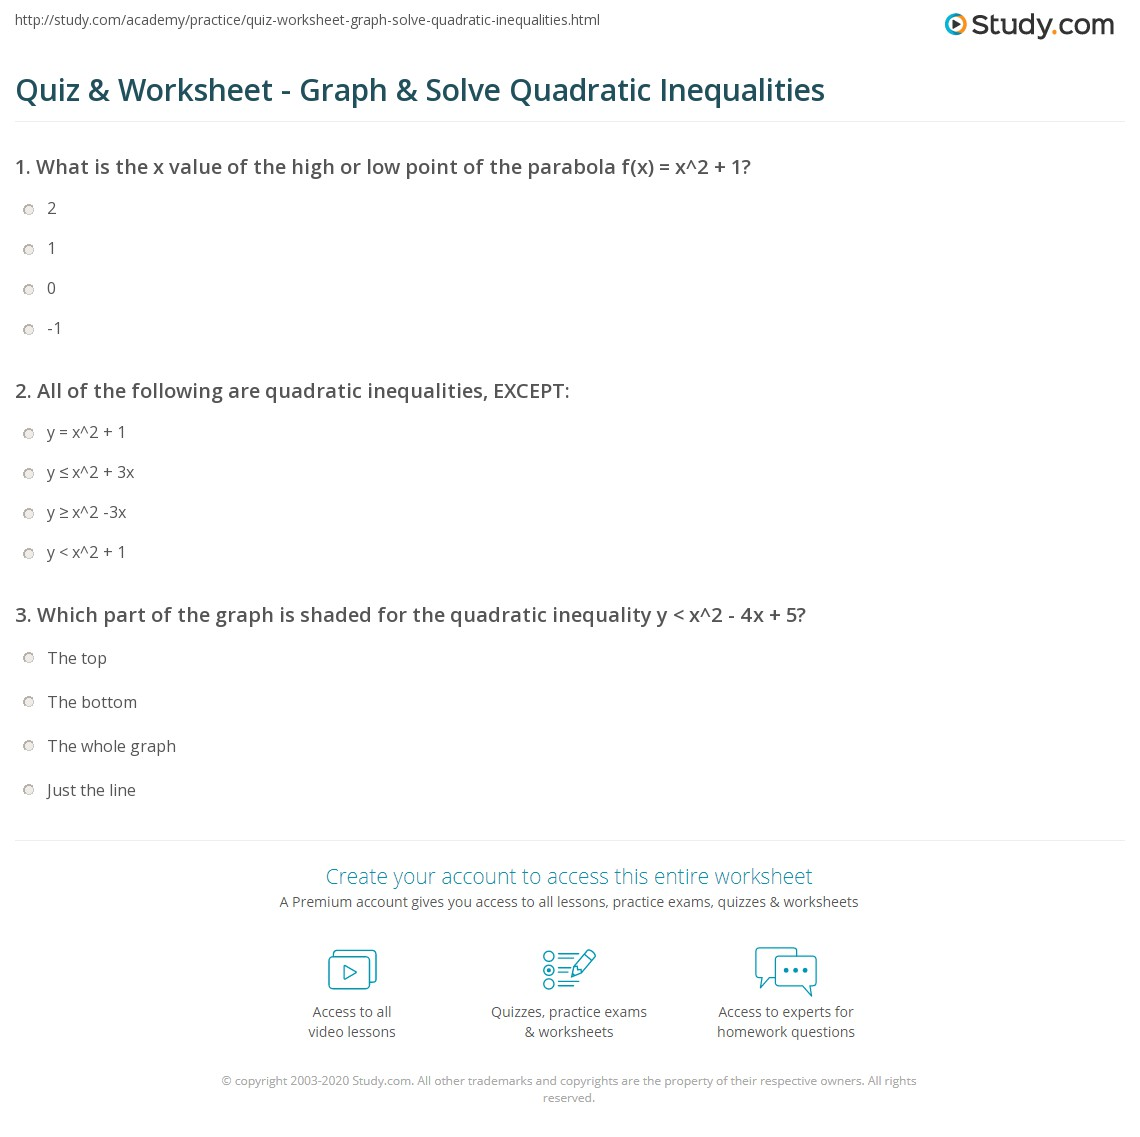 Solving Quadratic Inequalities Worksheet 025 - Solving Quadratic Inequalities Worksheet